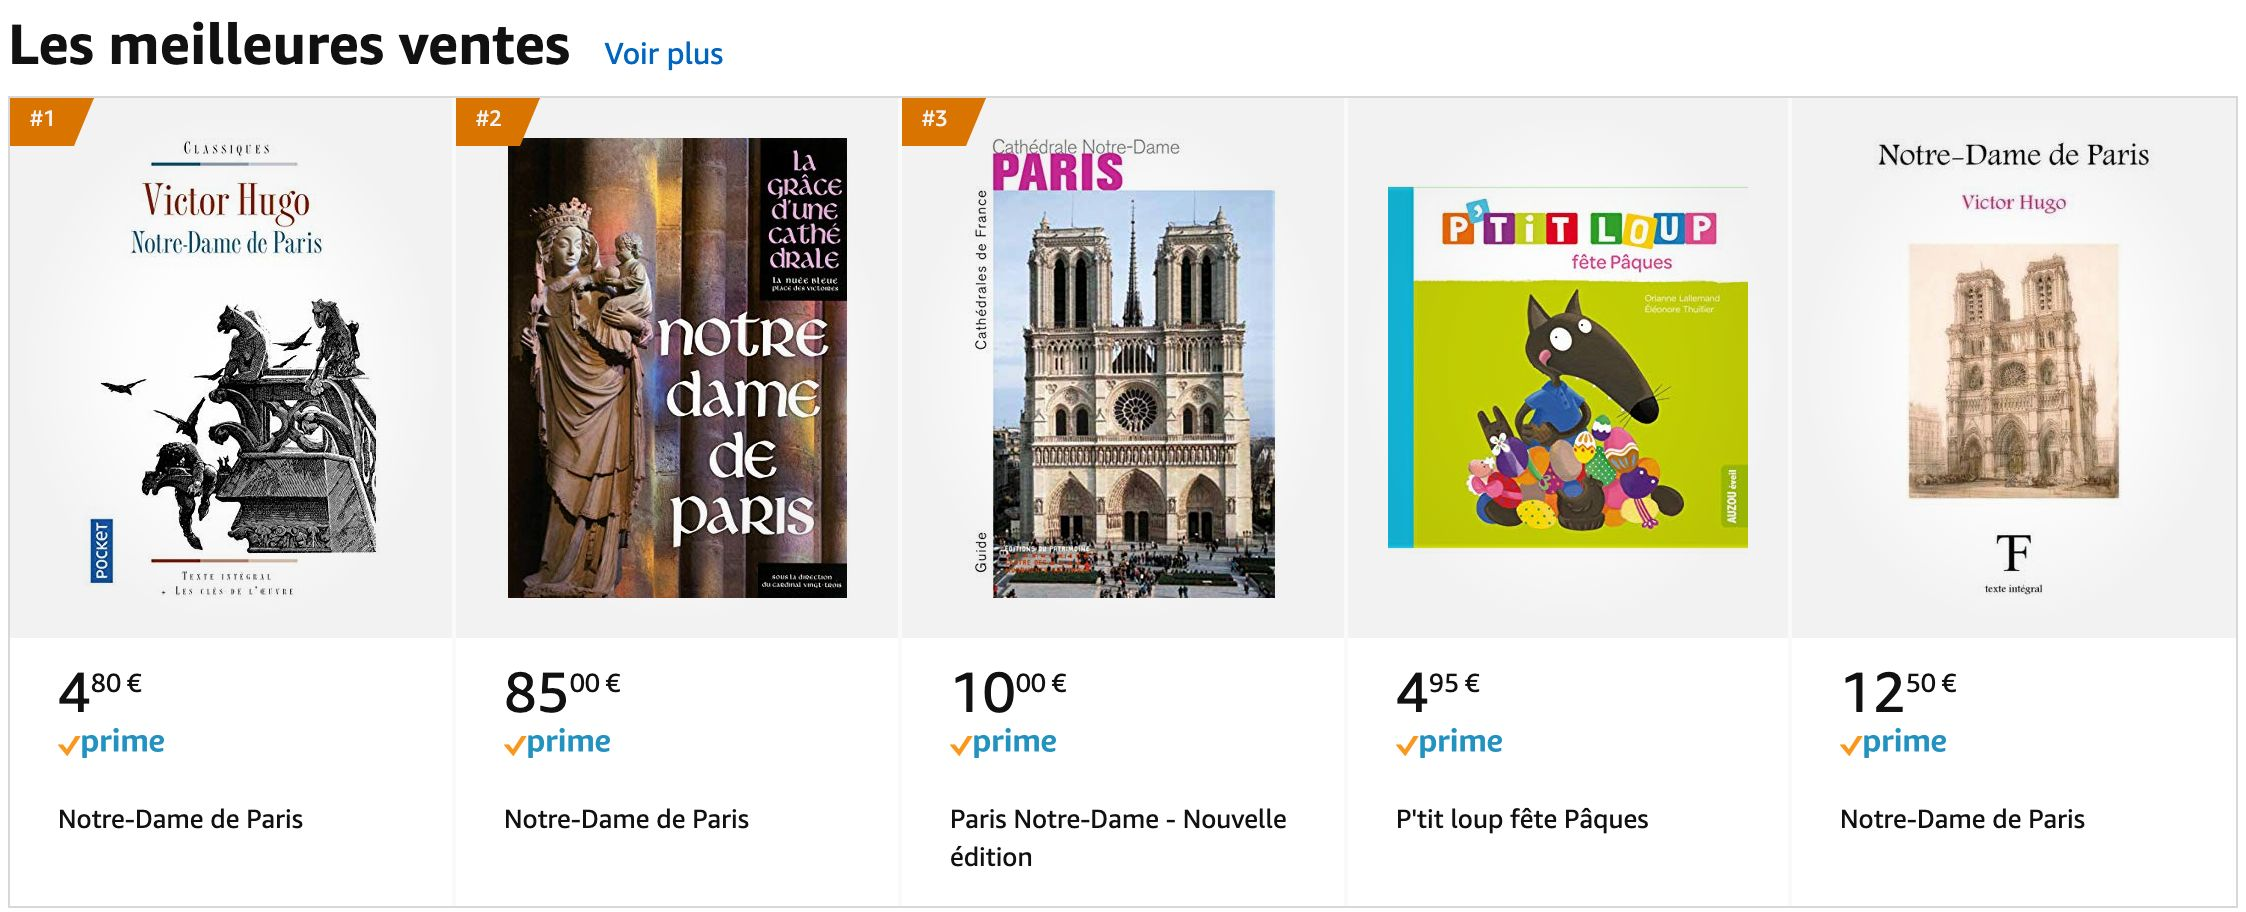 Book Sales For 'The Hunchback Of Notre Dame' Soar In France After Cathedral Fire